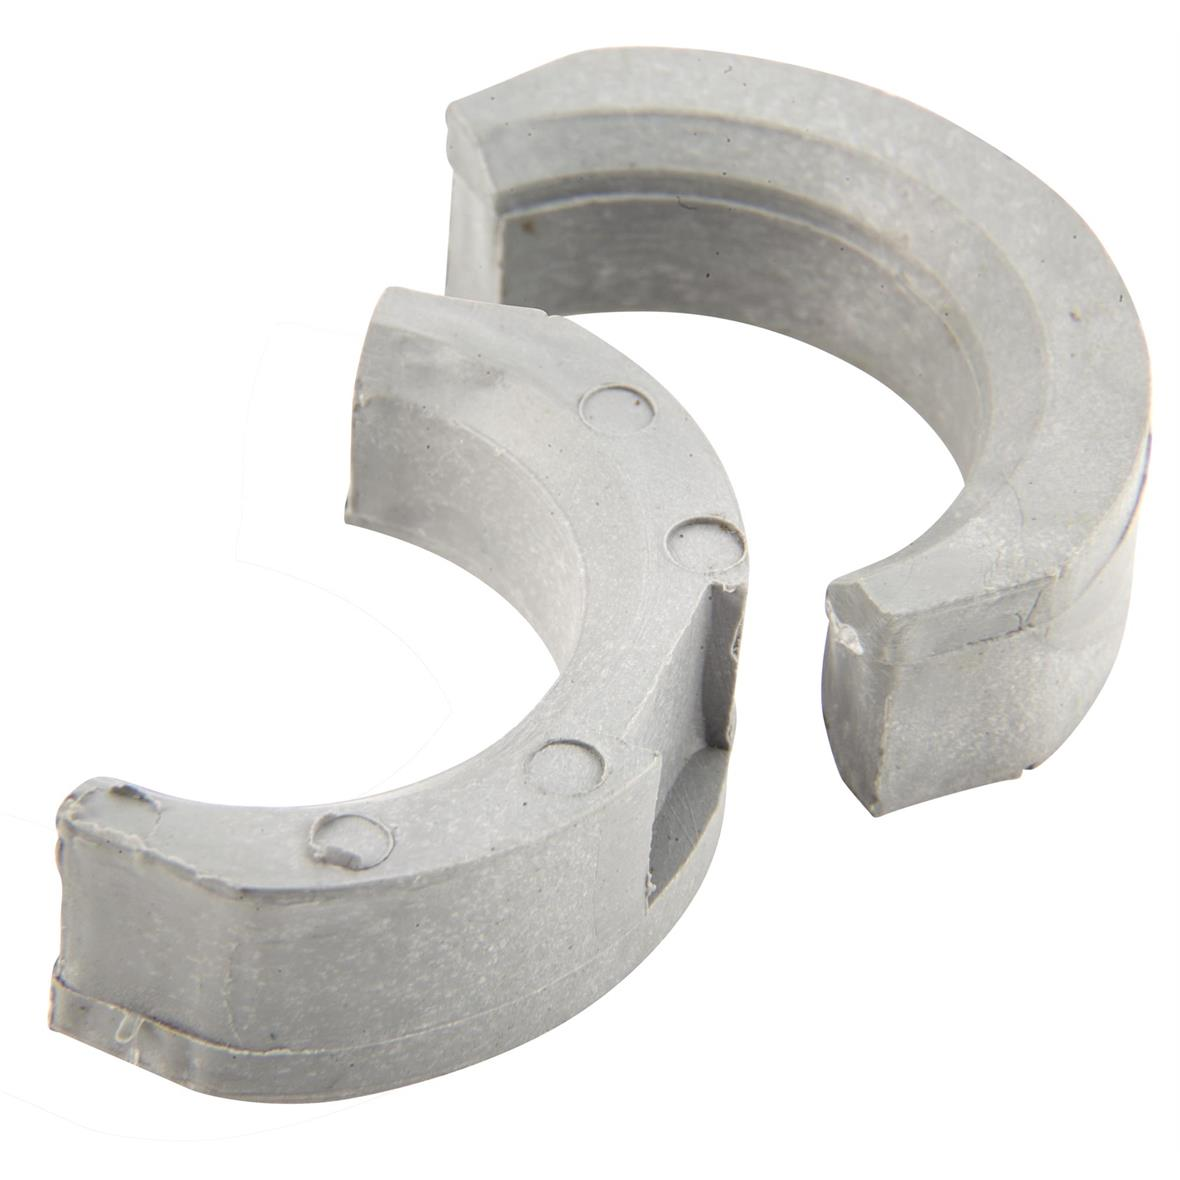 Product Image for 'Guide Bushing gear tubeTitle'